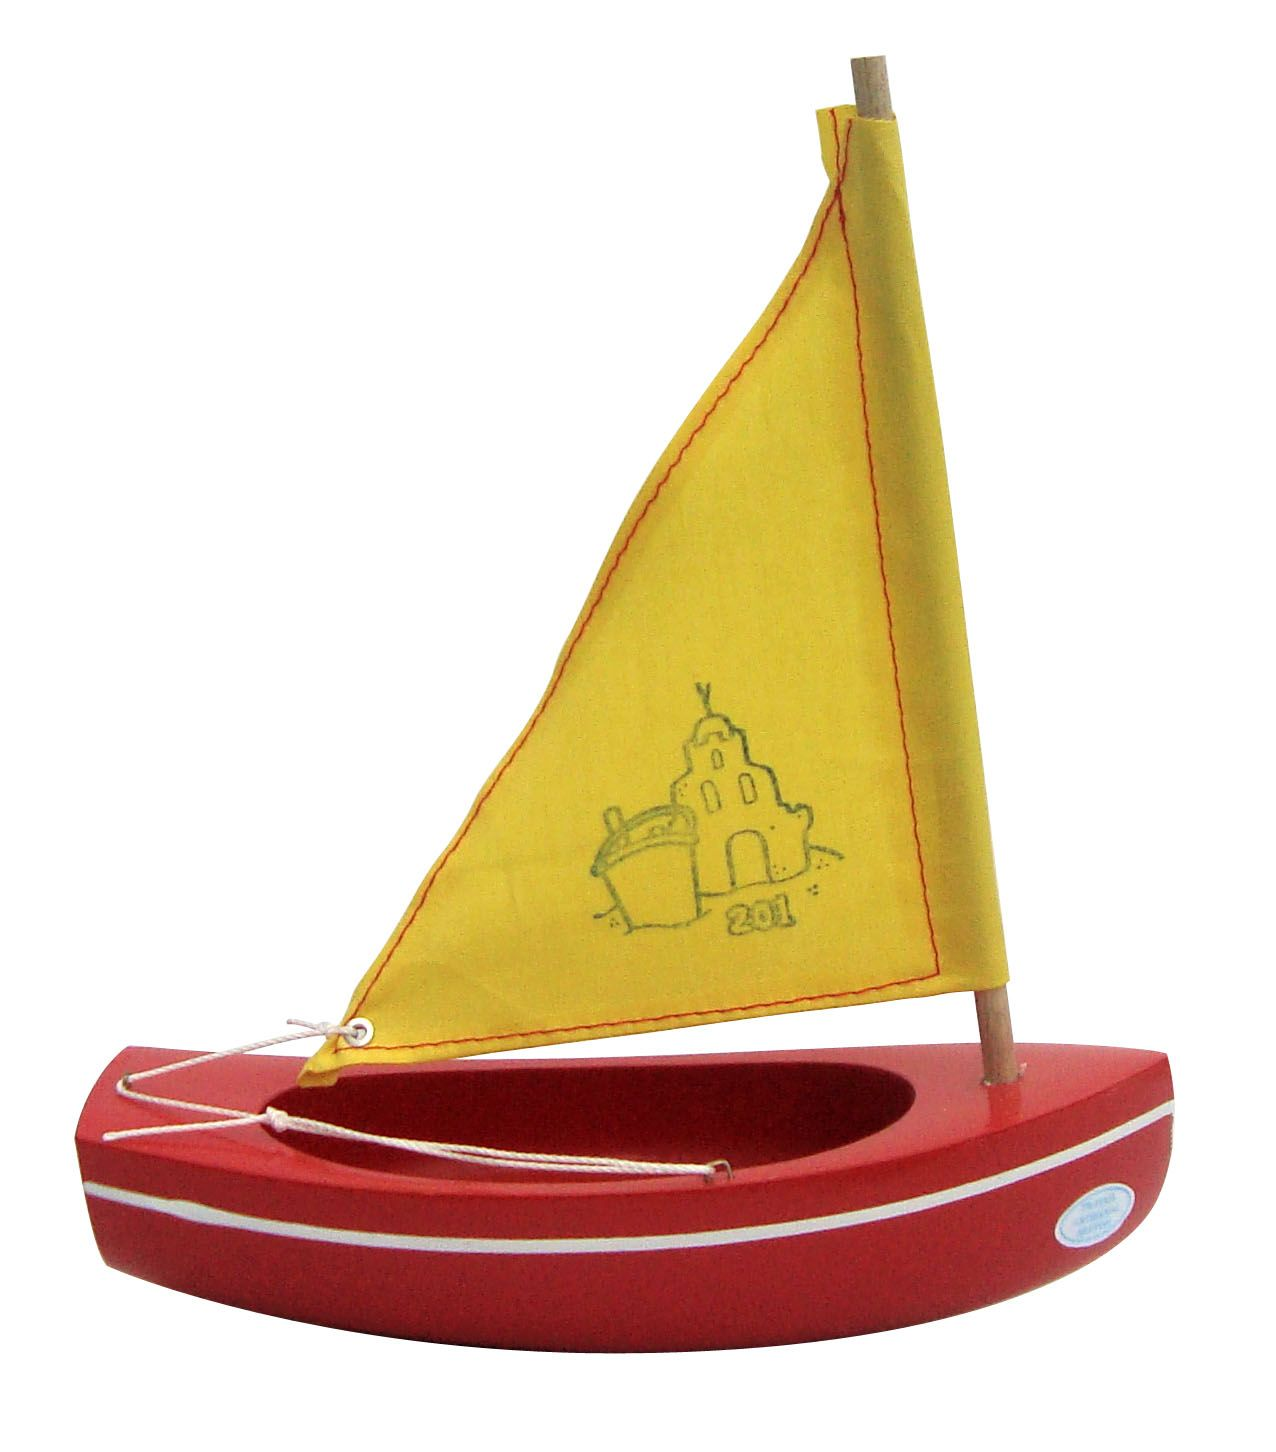 Wooden Toy Sailing Boat Eco Wooden Toys Wooden Toys Kids Bath